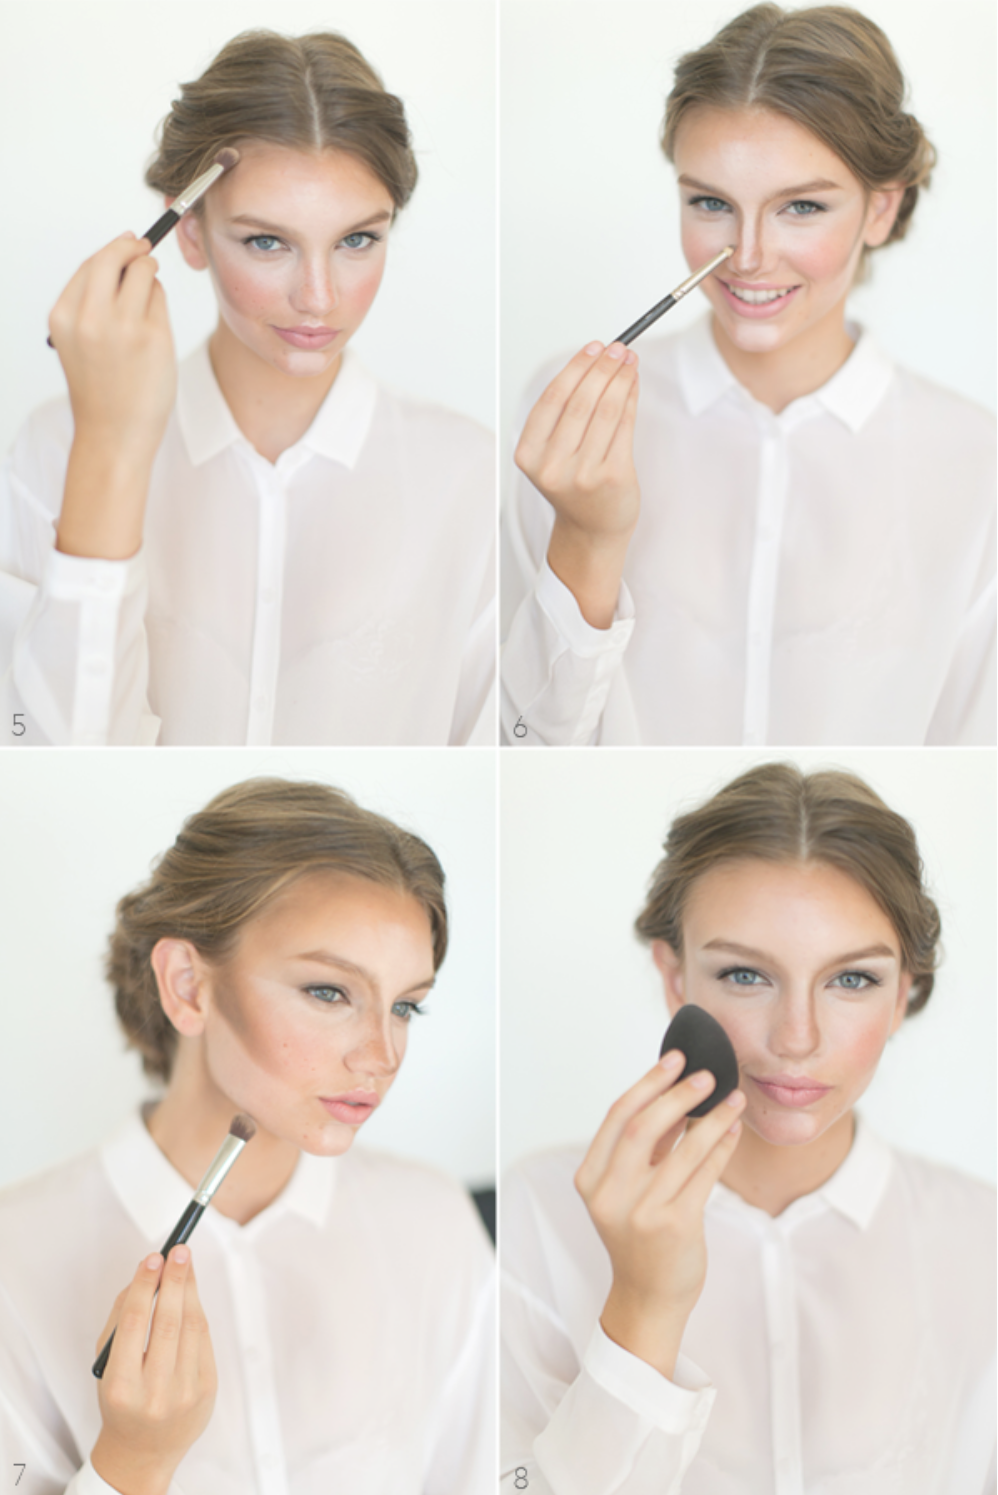 learn the art of contouring and highlighting in this detailed tutorial compiled by Amy Clarke for oncewed.com